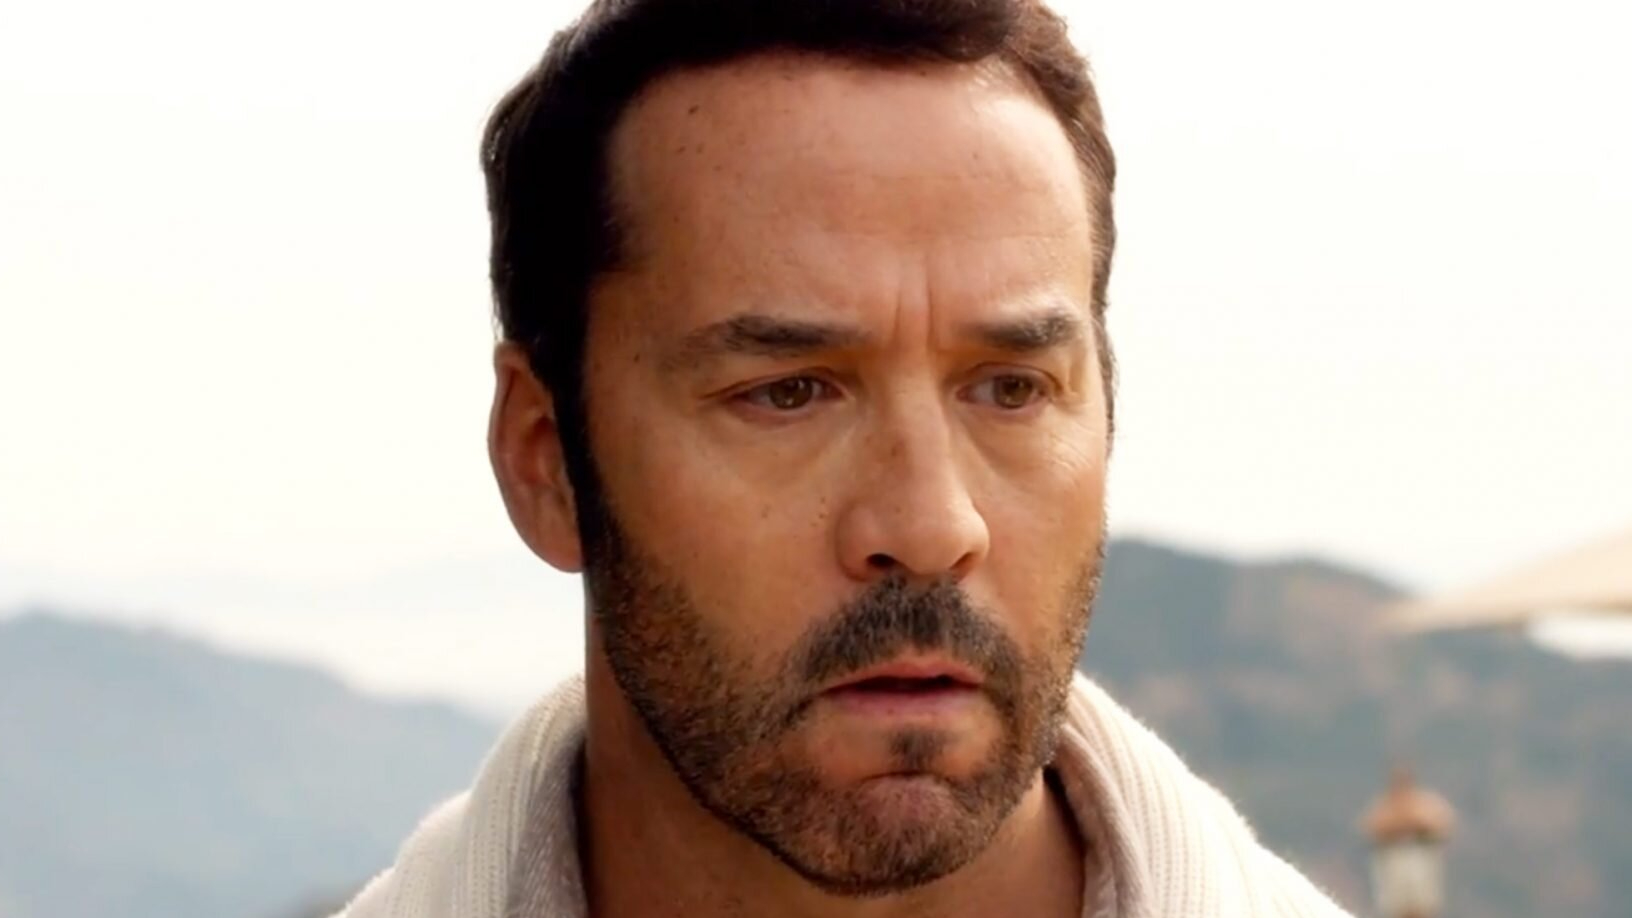 Jeremy Piven: Where Has He Been Since Entourage?